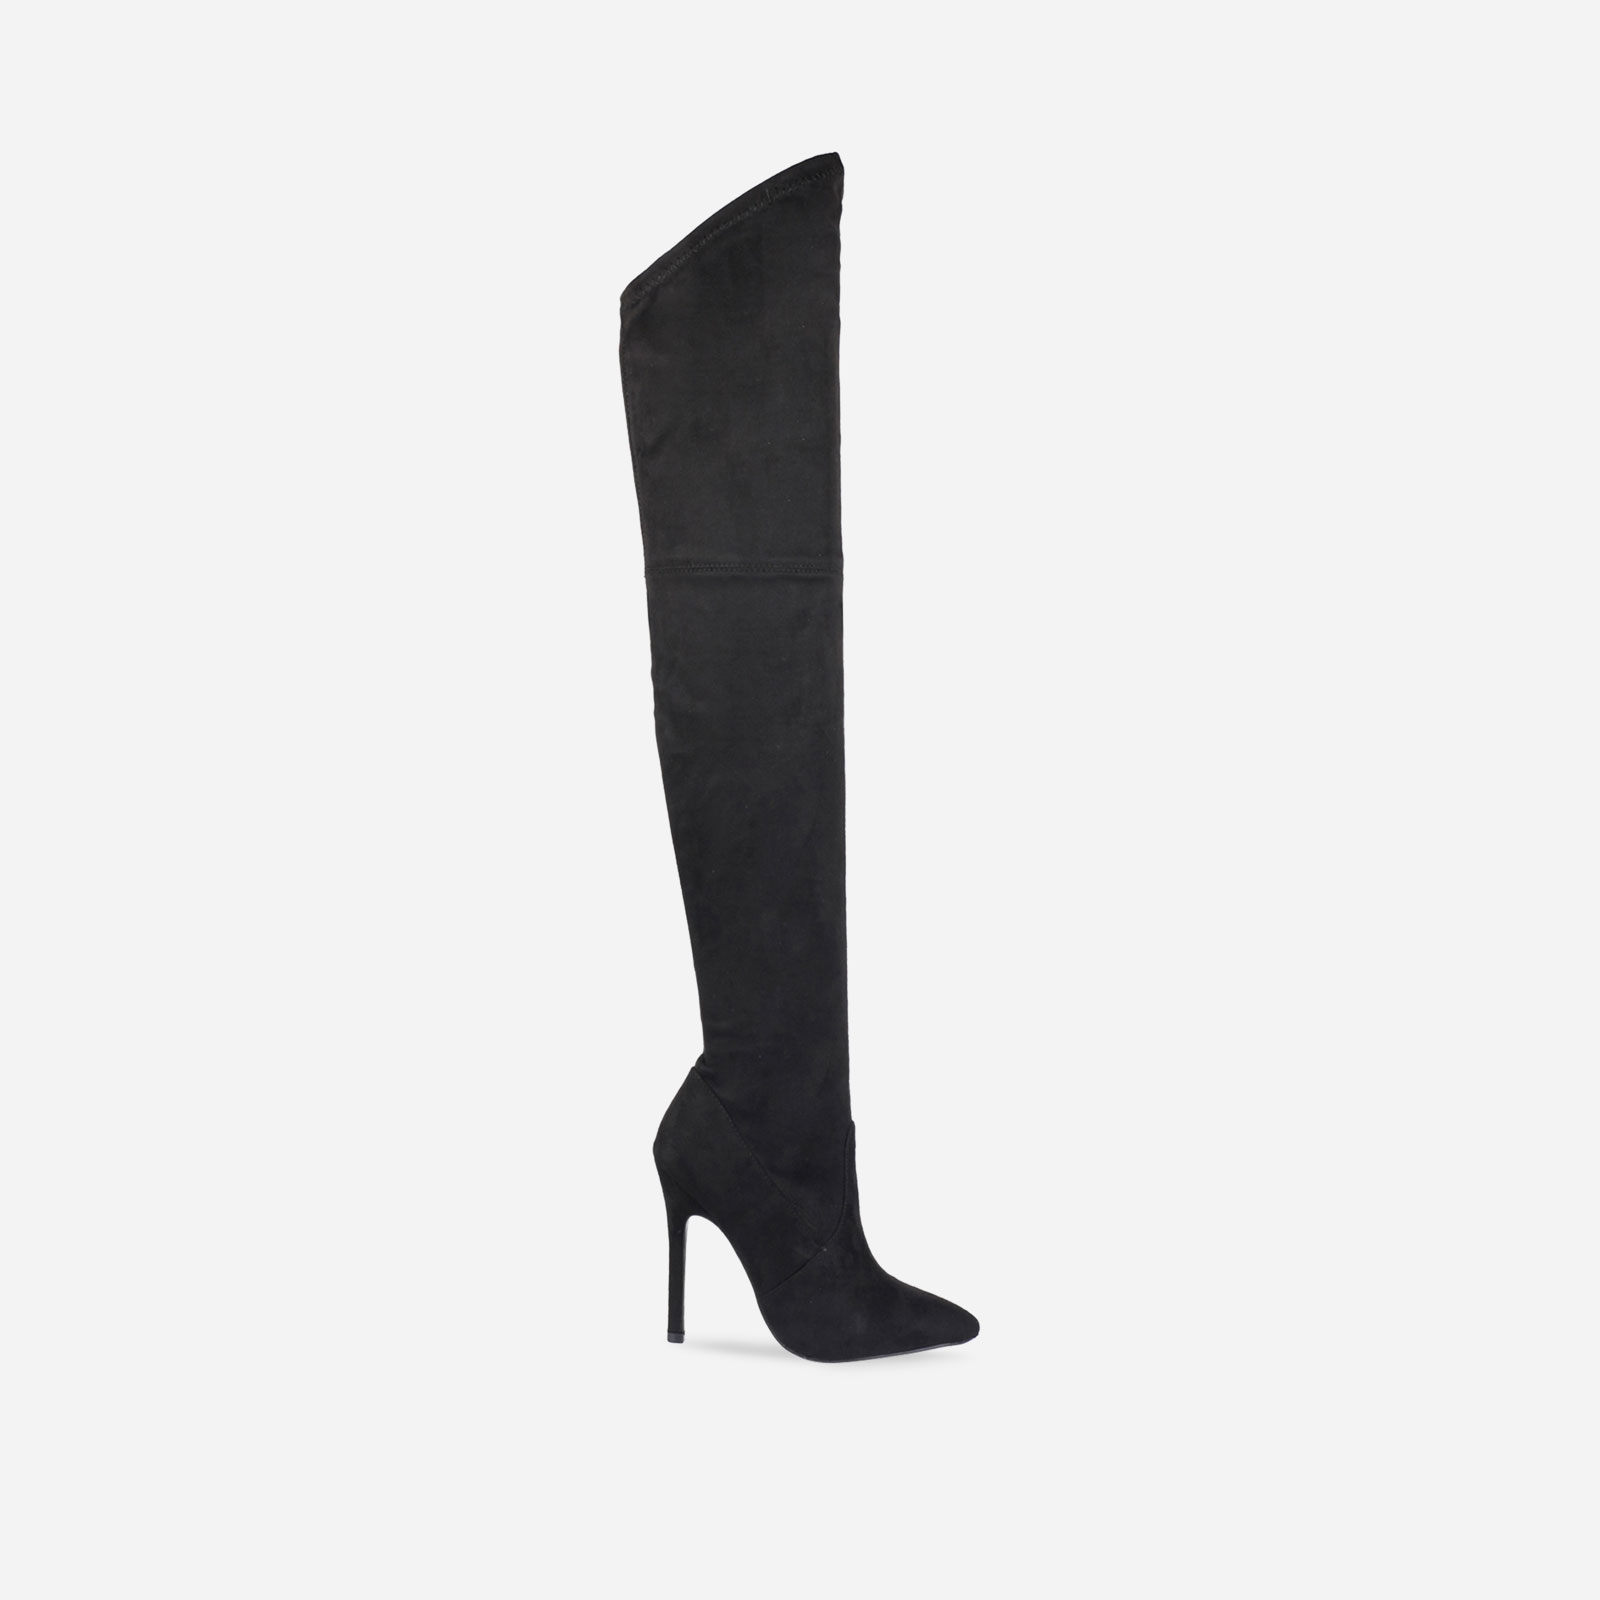 Amber Over The Knee Black Faux Suede Stiletto Boot Image 1